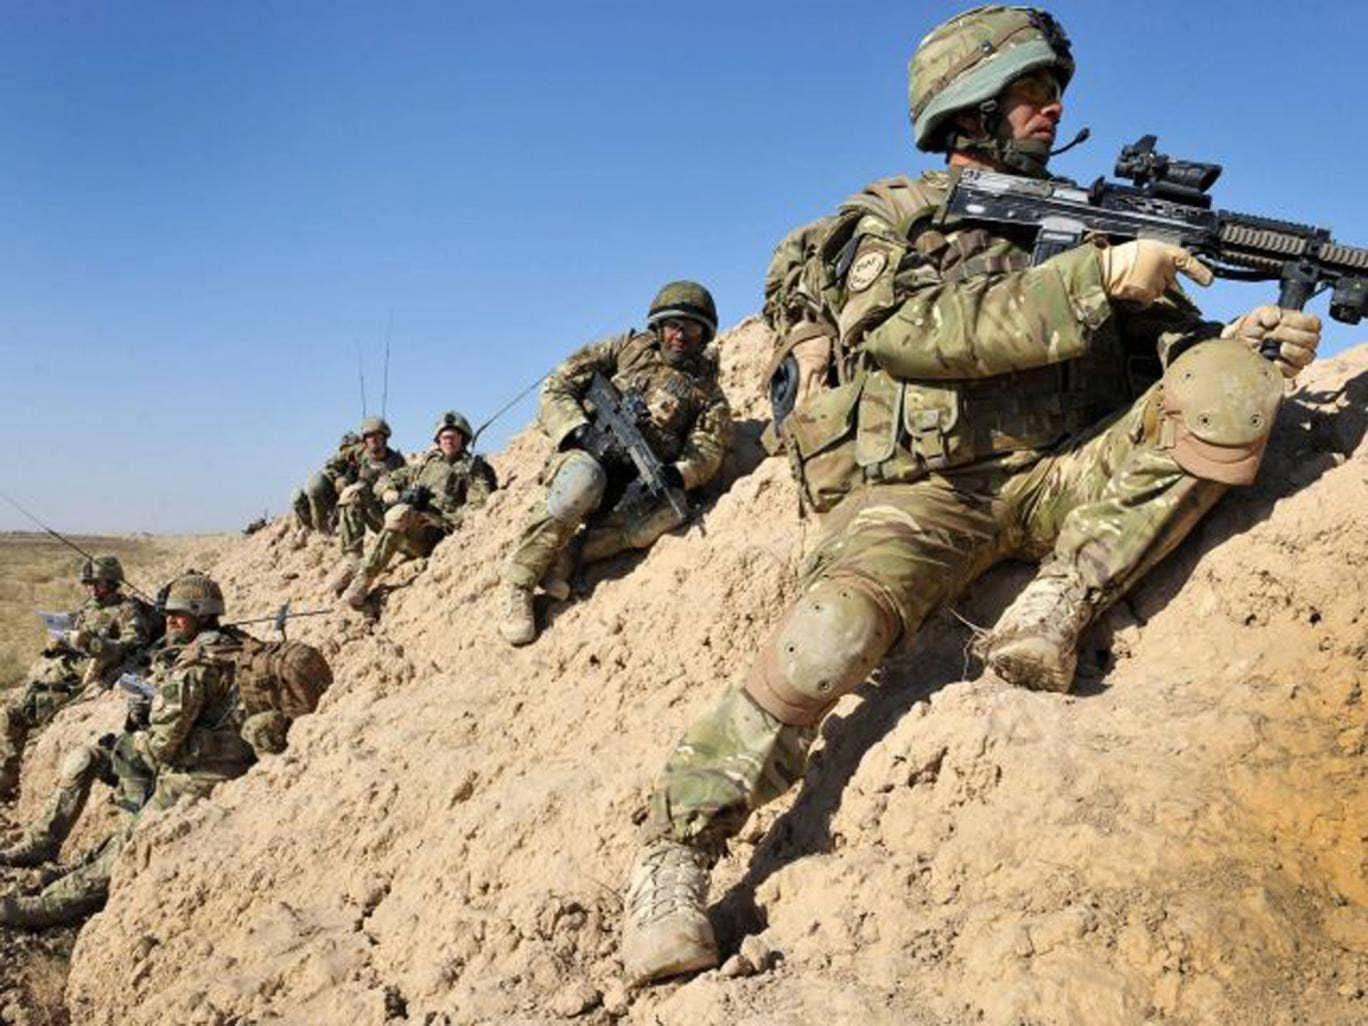 British soldiers in direct combat roles will not be asked to serve an extra three months in Afghanistan